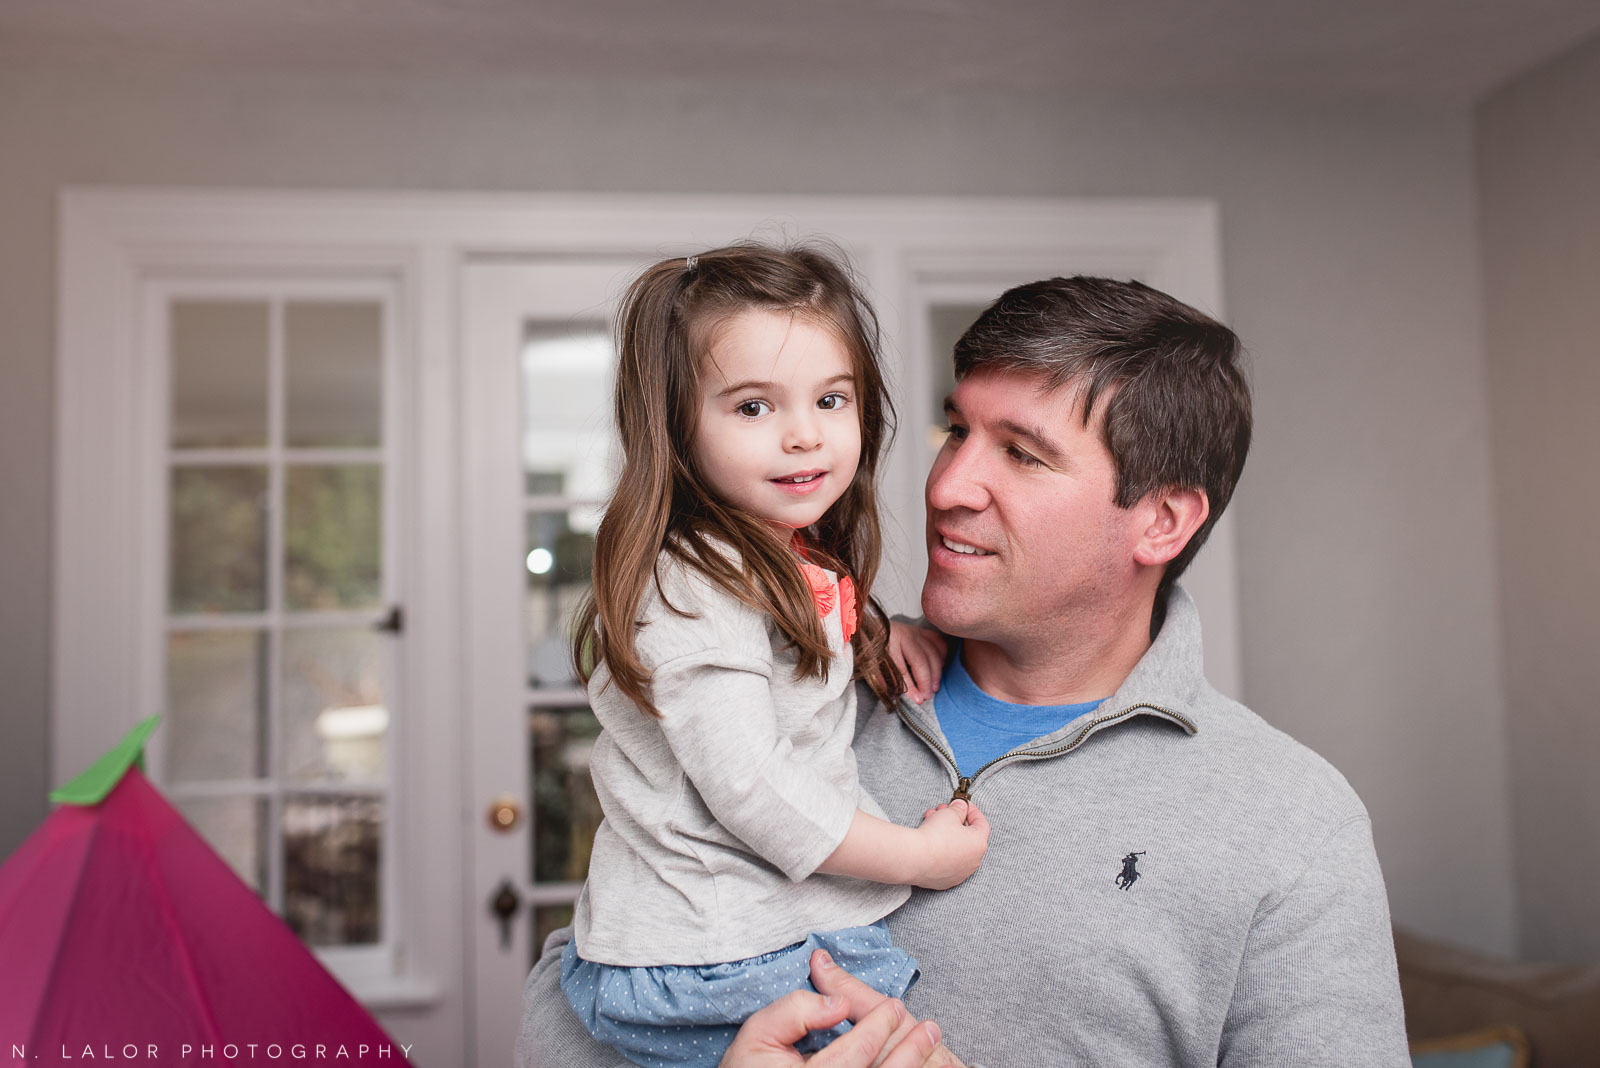 Dad and his 3-year old daughter. At-home family portrait by N. Lalor Photography.